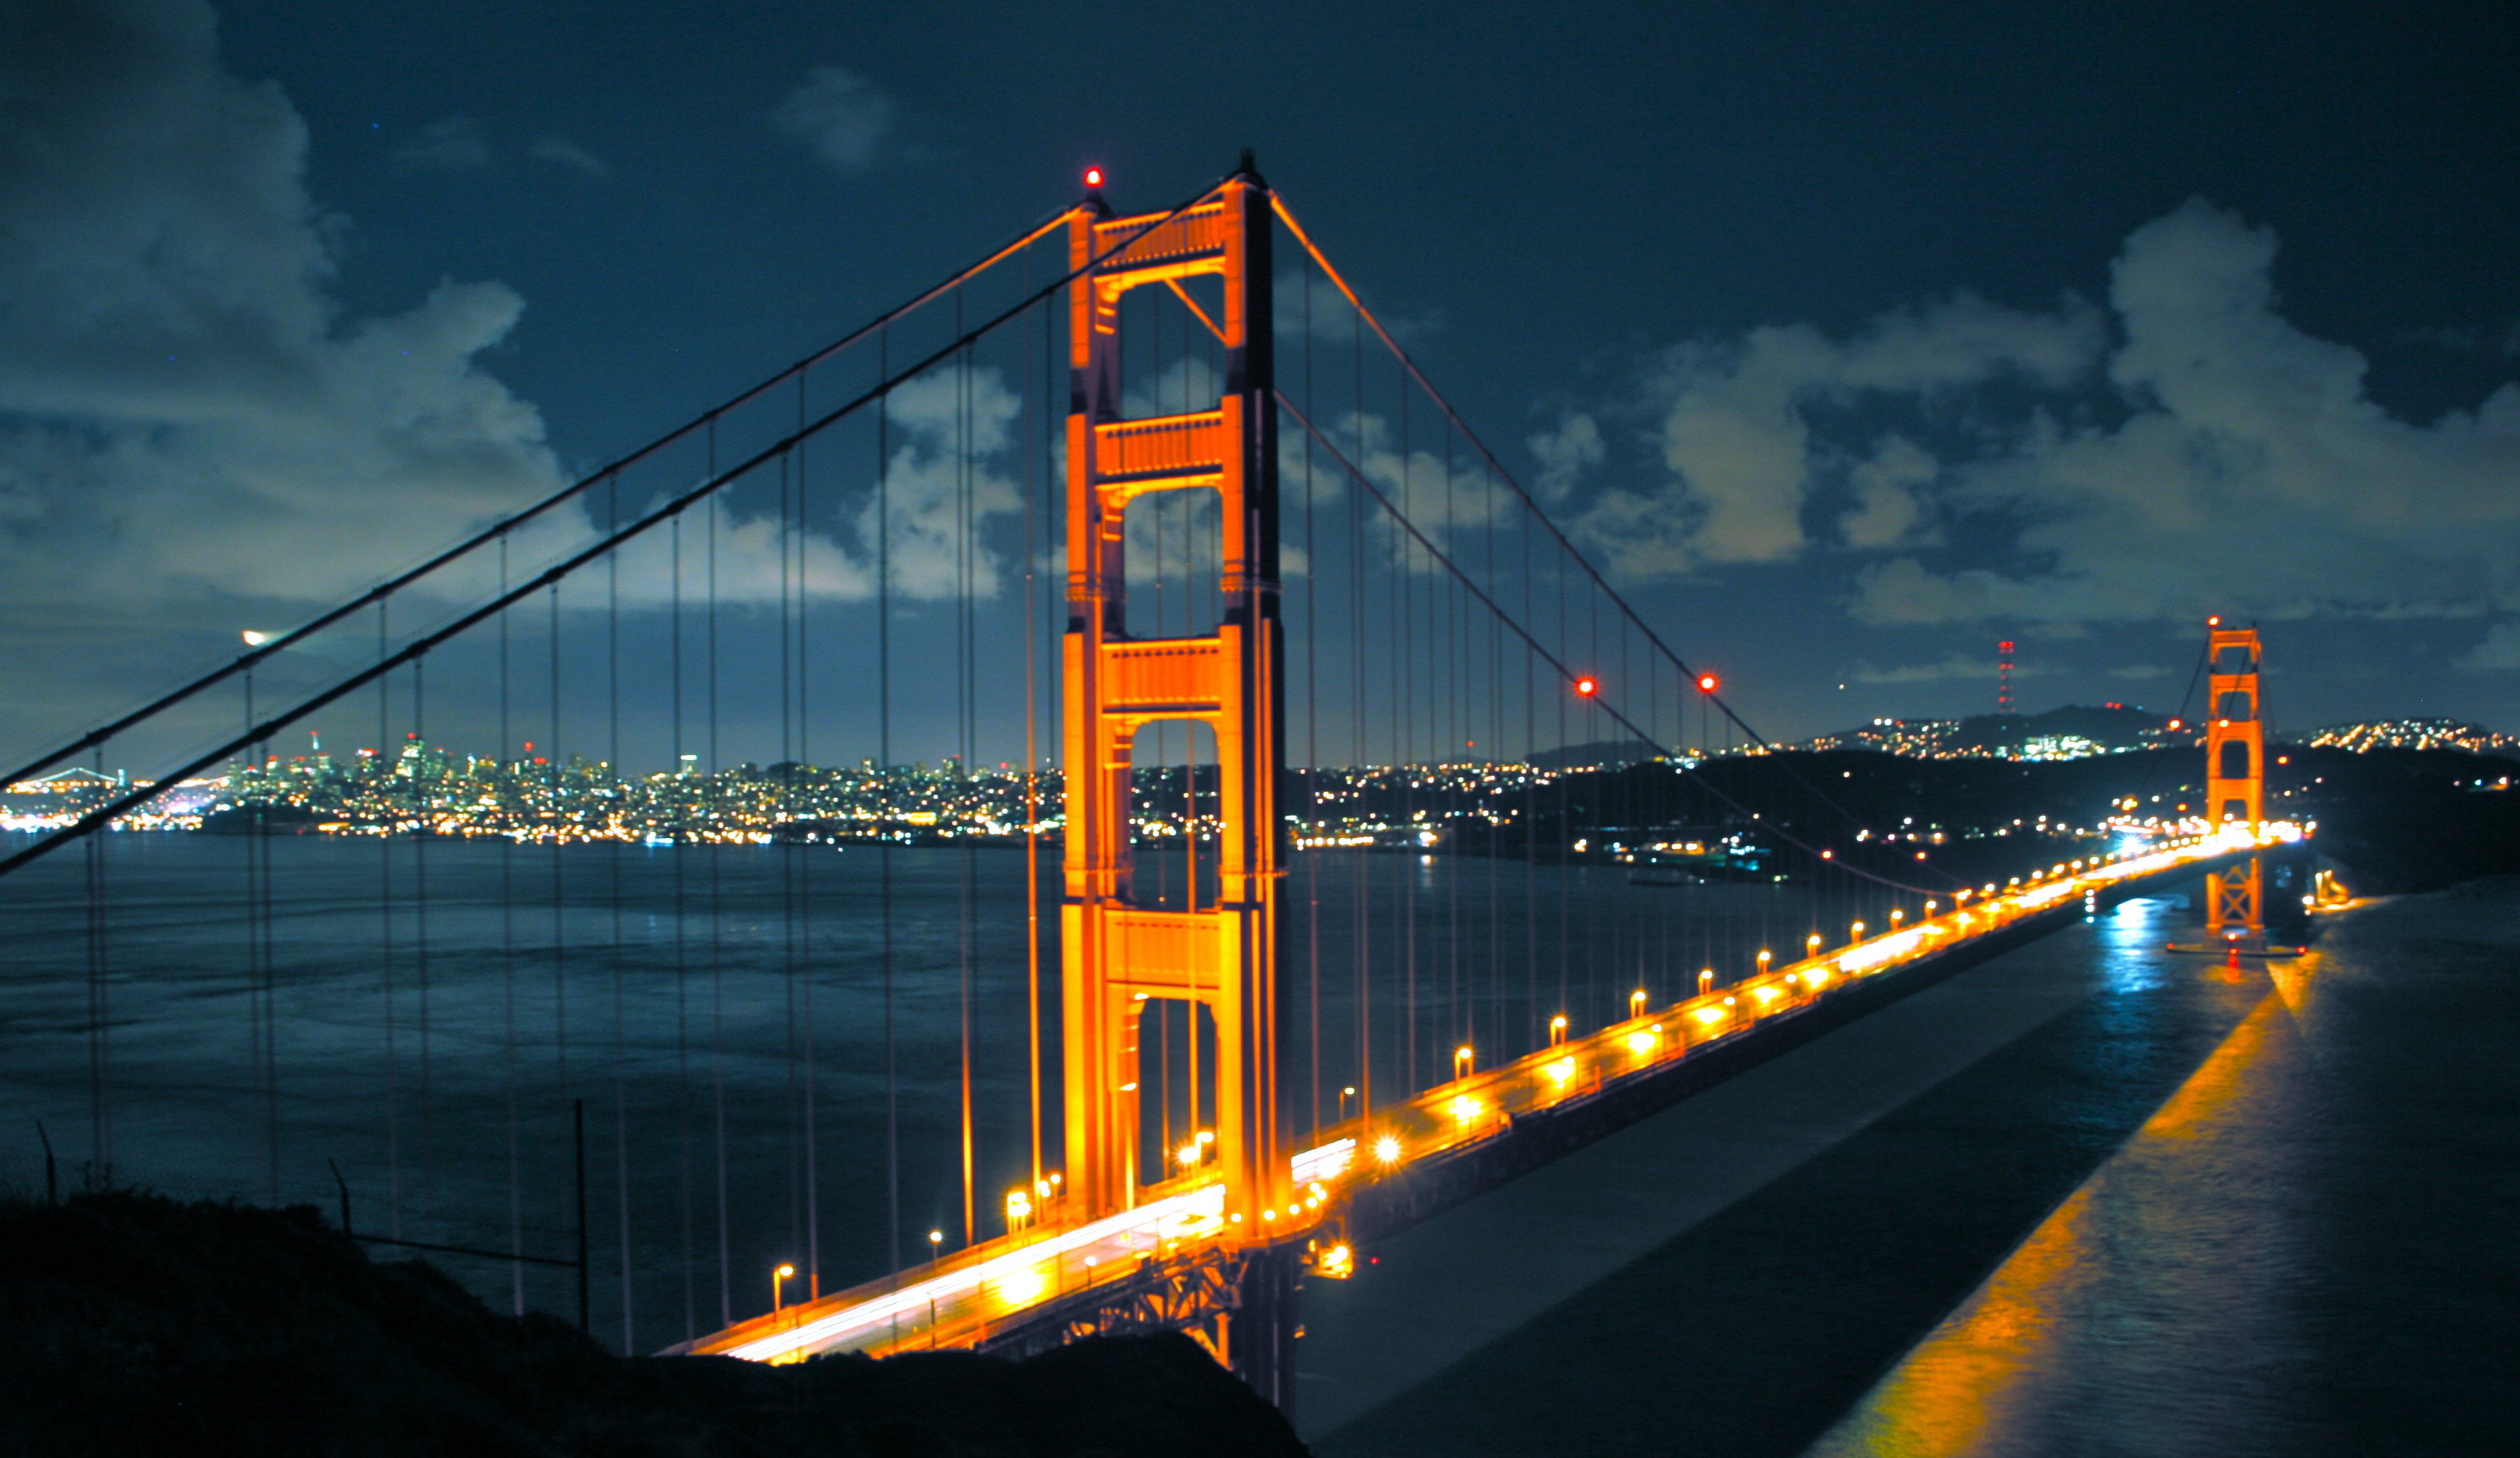 A Beautiful Night View of Golden Gate Bridge wallpaper